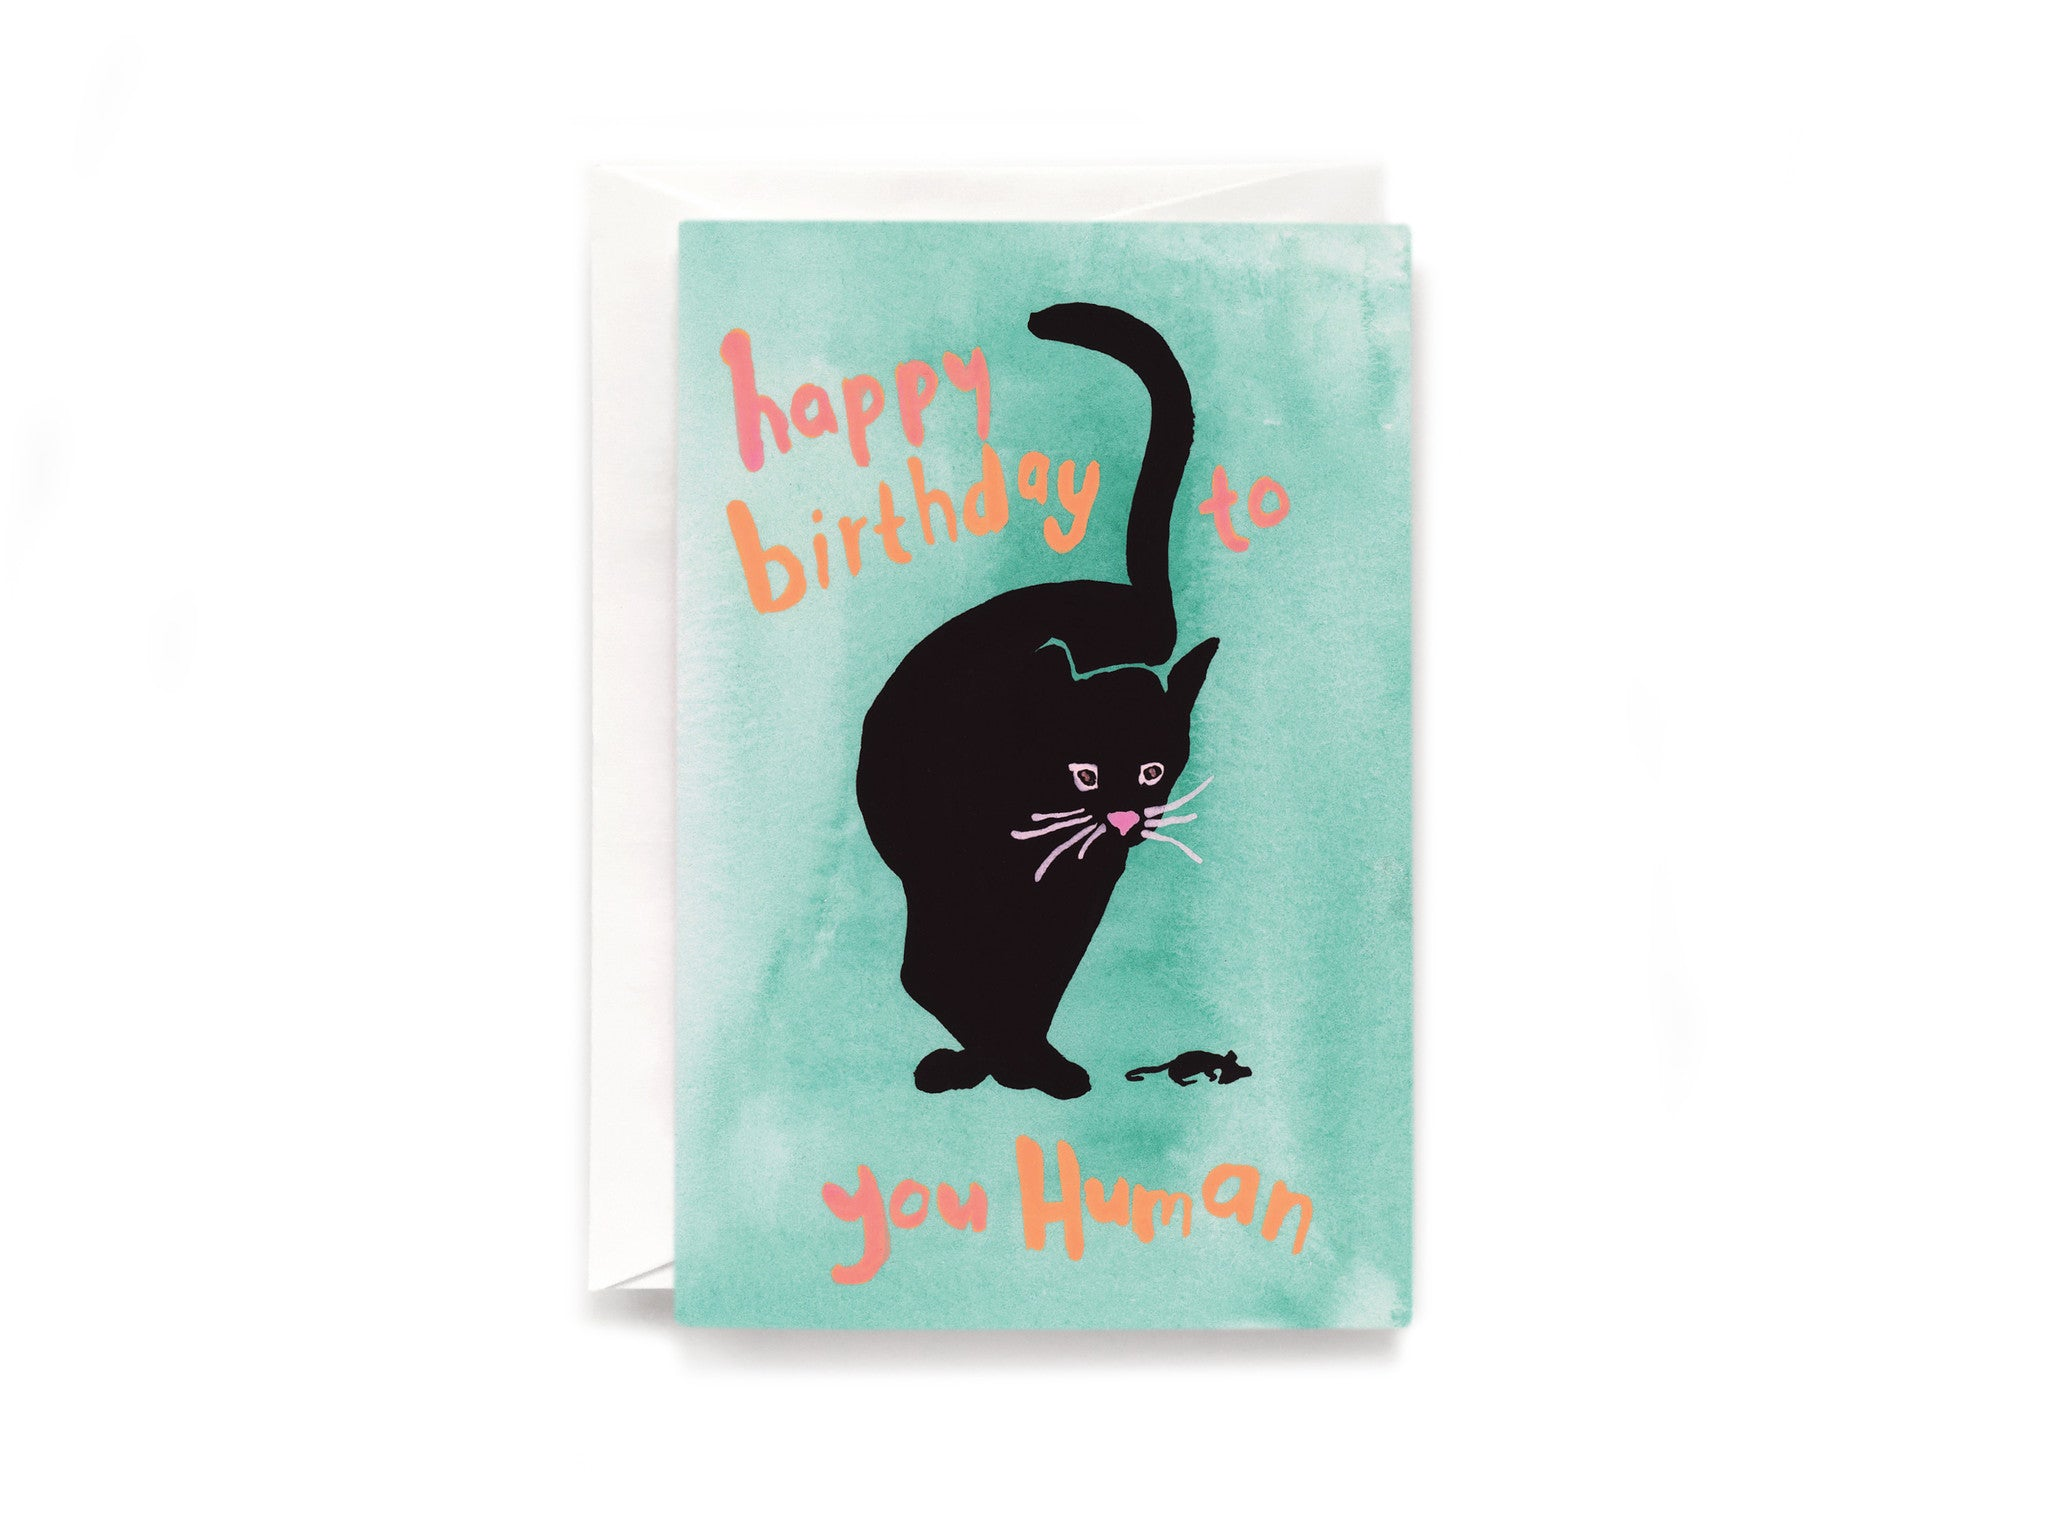 Party bunch co black cat greeting card party bunch co black cat birthday greeting card kristyandbryce Gallery